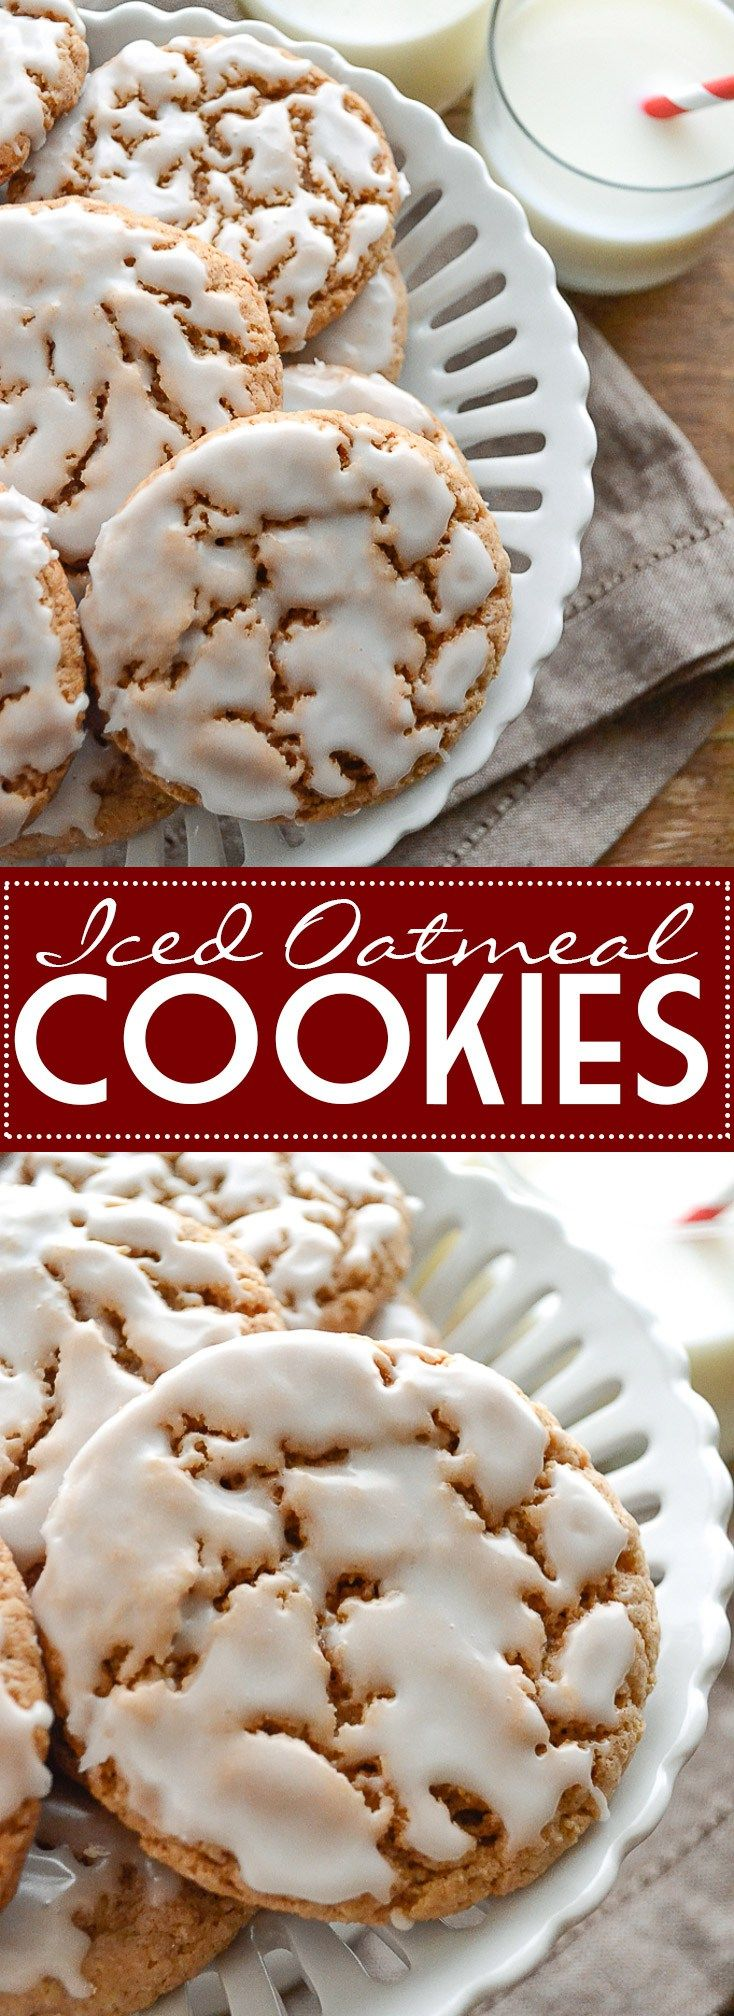 Iced Oatmeal Cookies - perfect with a tall glass of milk! | www.motherthyme.com